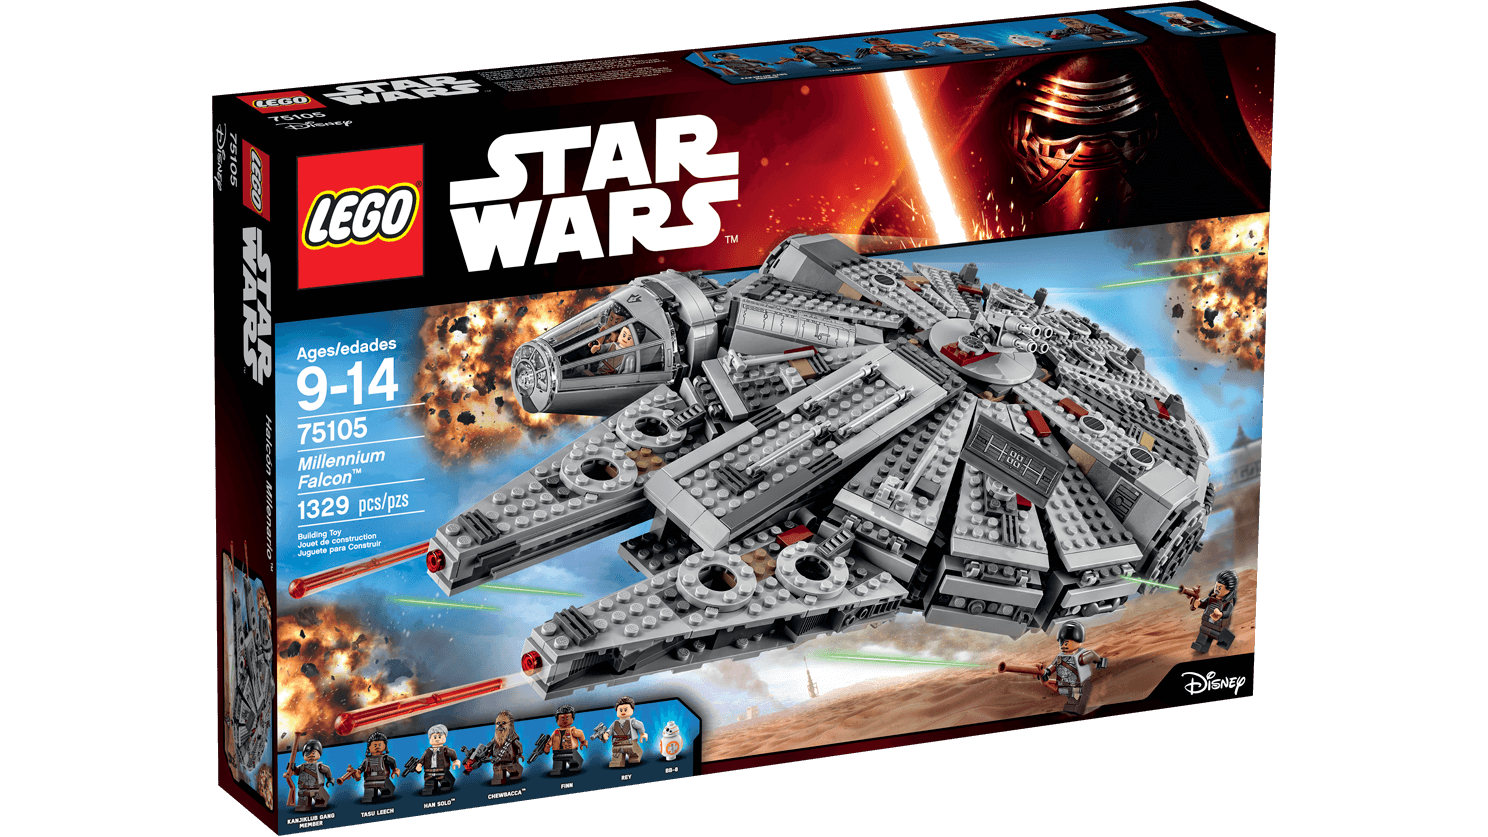 Star wars millennium falcon clipart png free download 75105 Millennium Falcon | Brickipedia | FANDOM powered by Wikia png free download